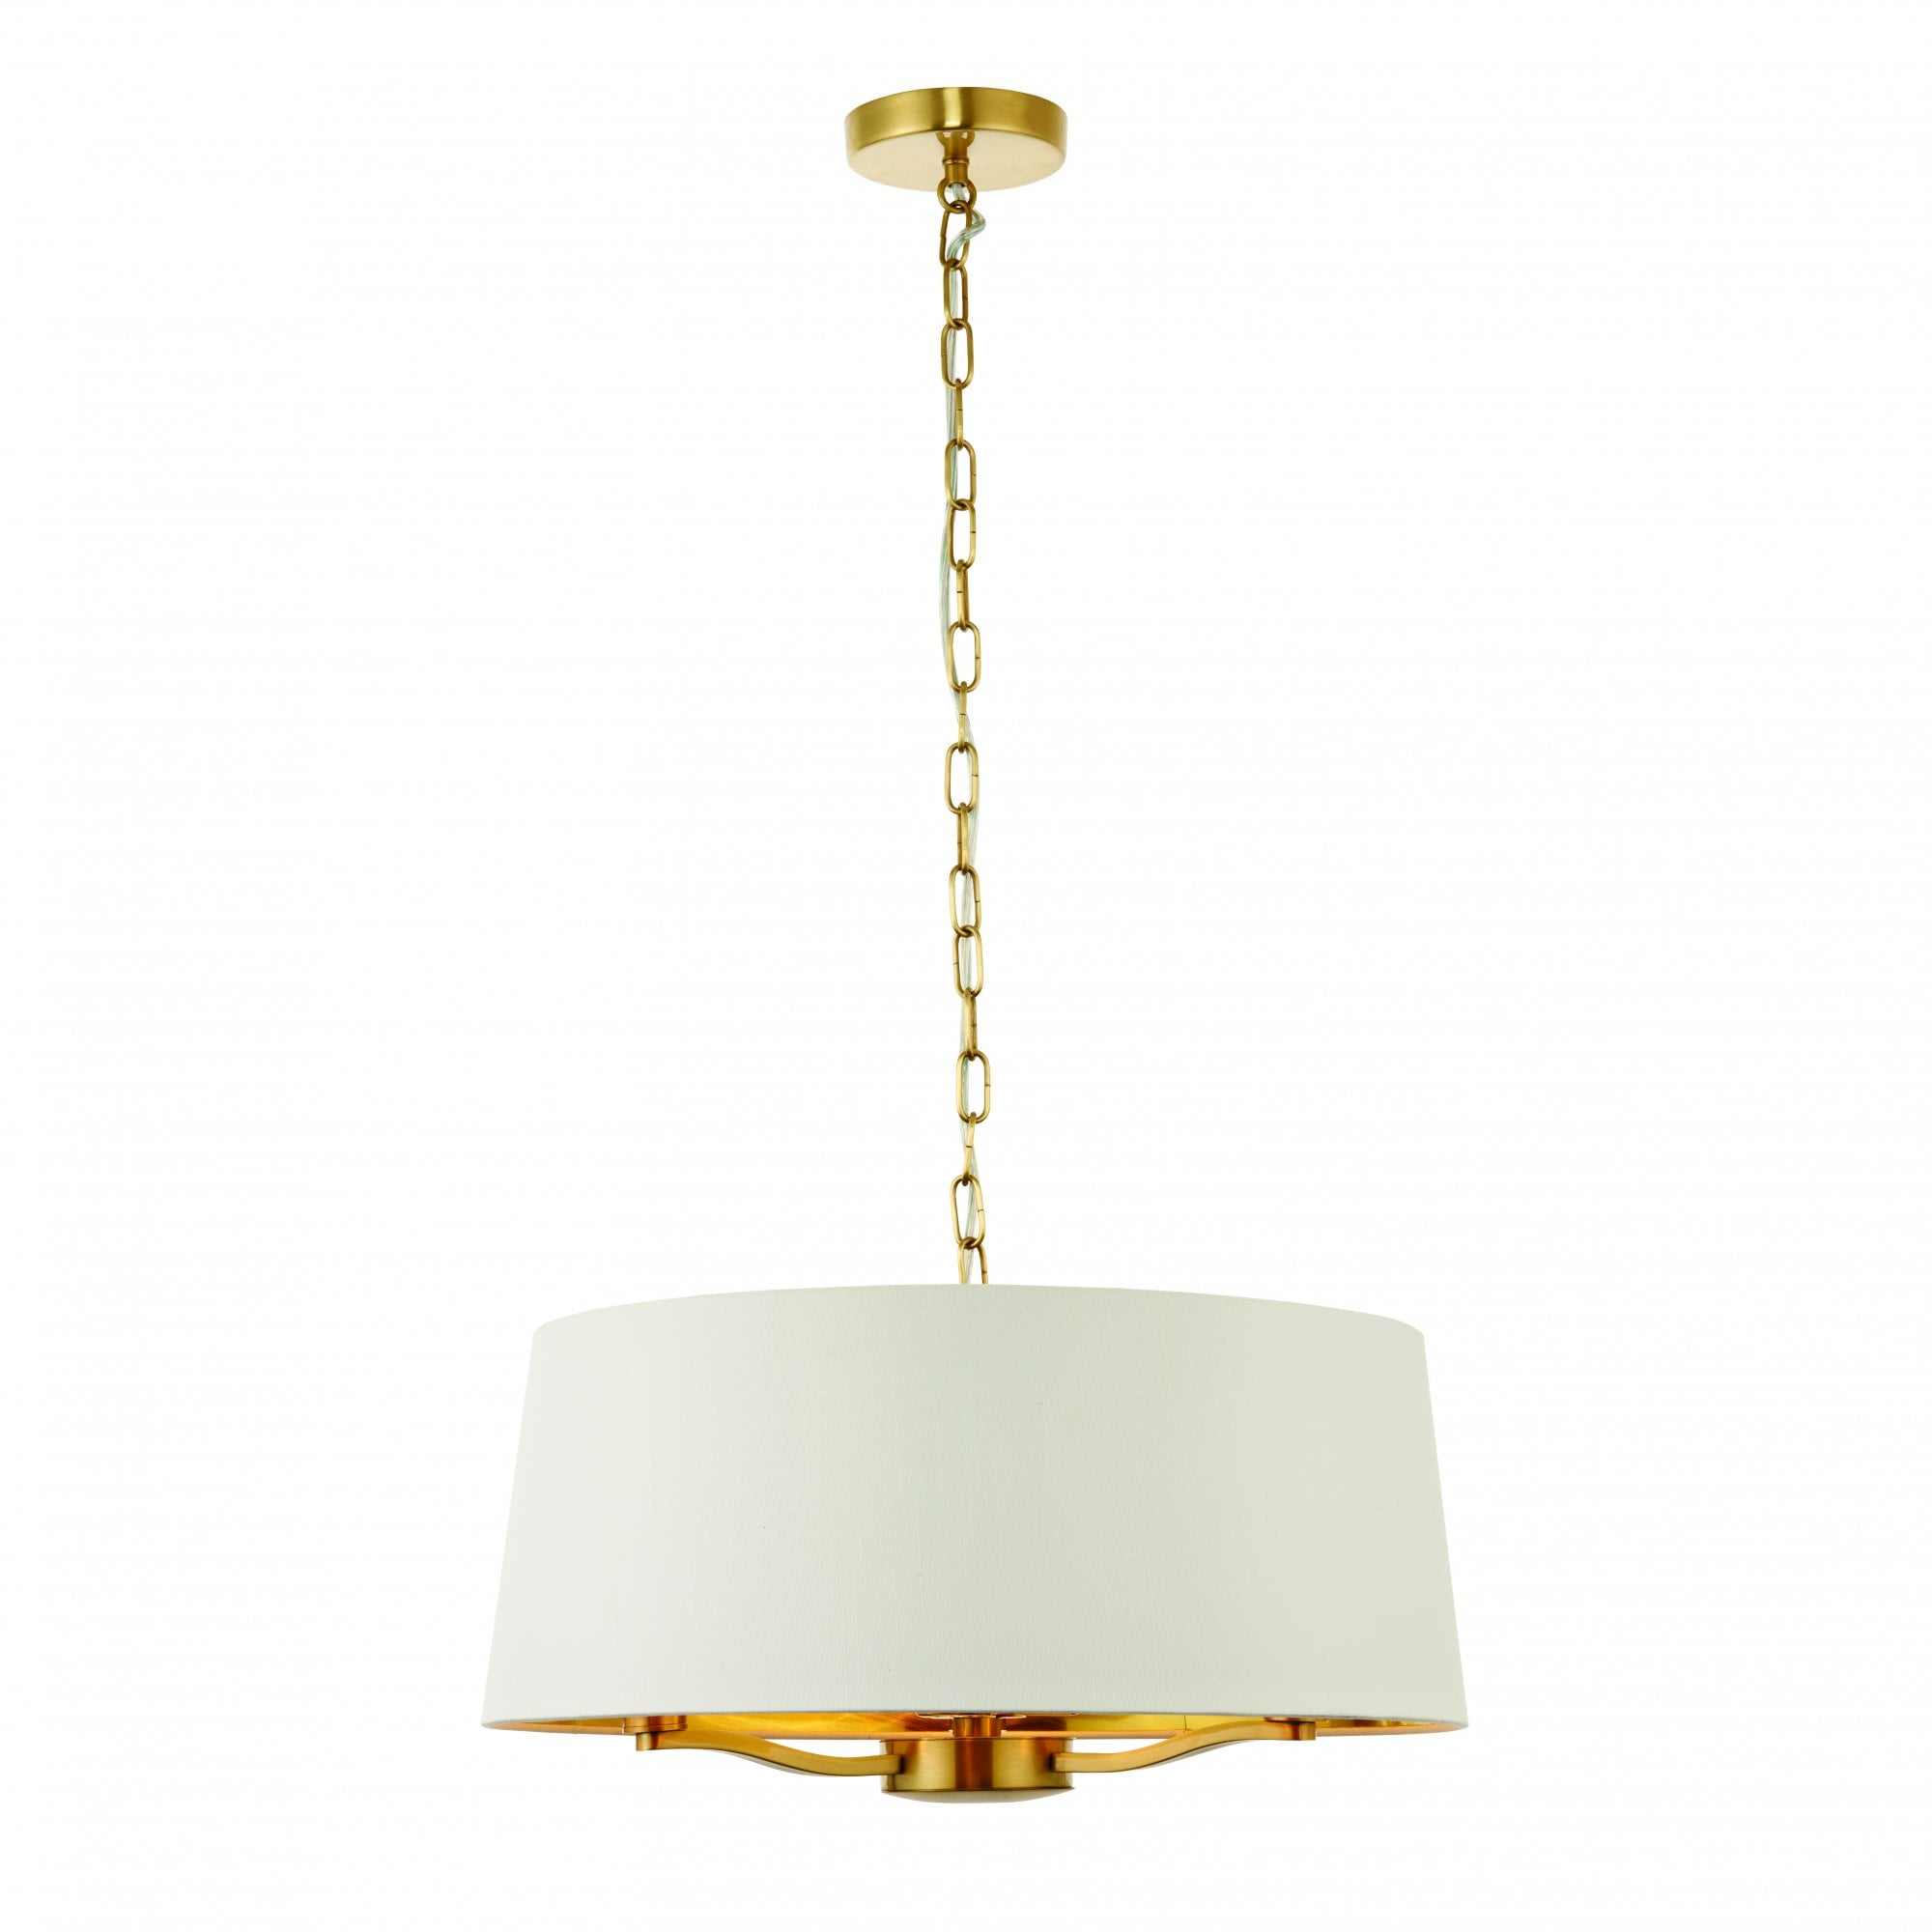 Satin Gold 3 Light Pendant With White Shade Surround Lighting Company